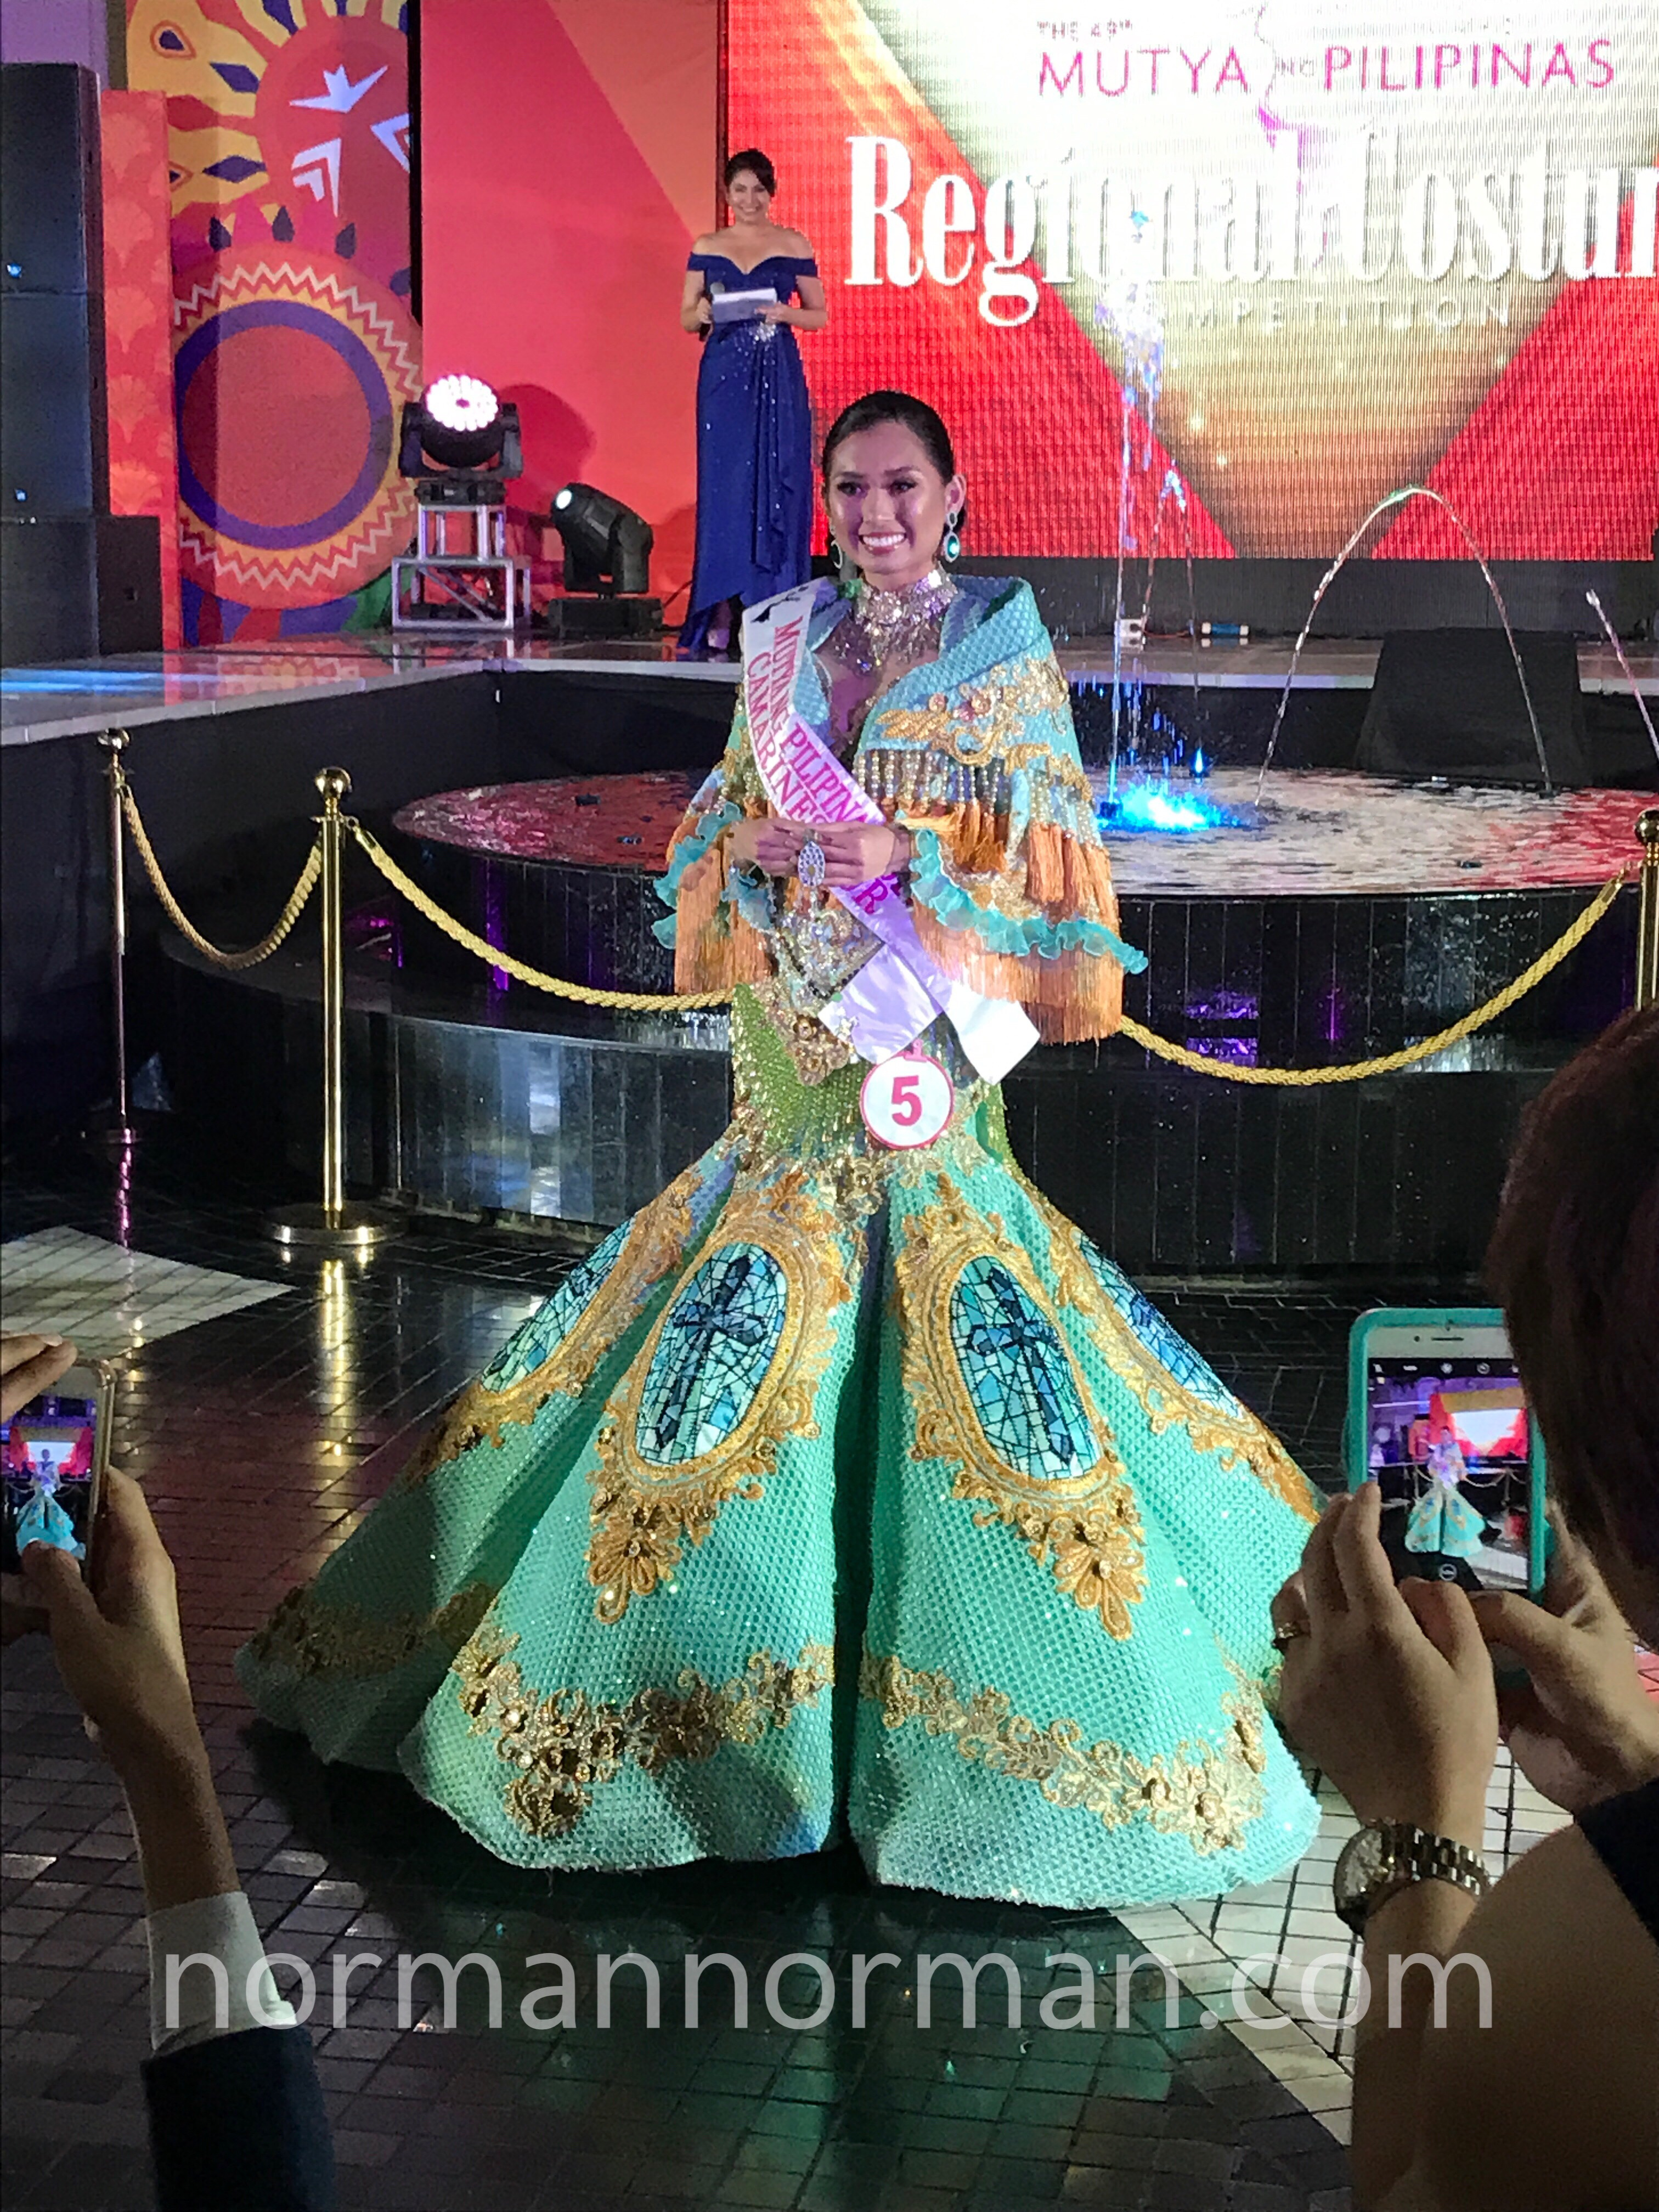 f4cf75ccc2 The Mutya ng Pilipinas 2017 Regional Costume Competition